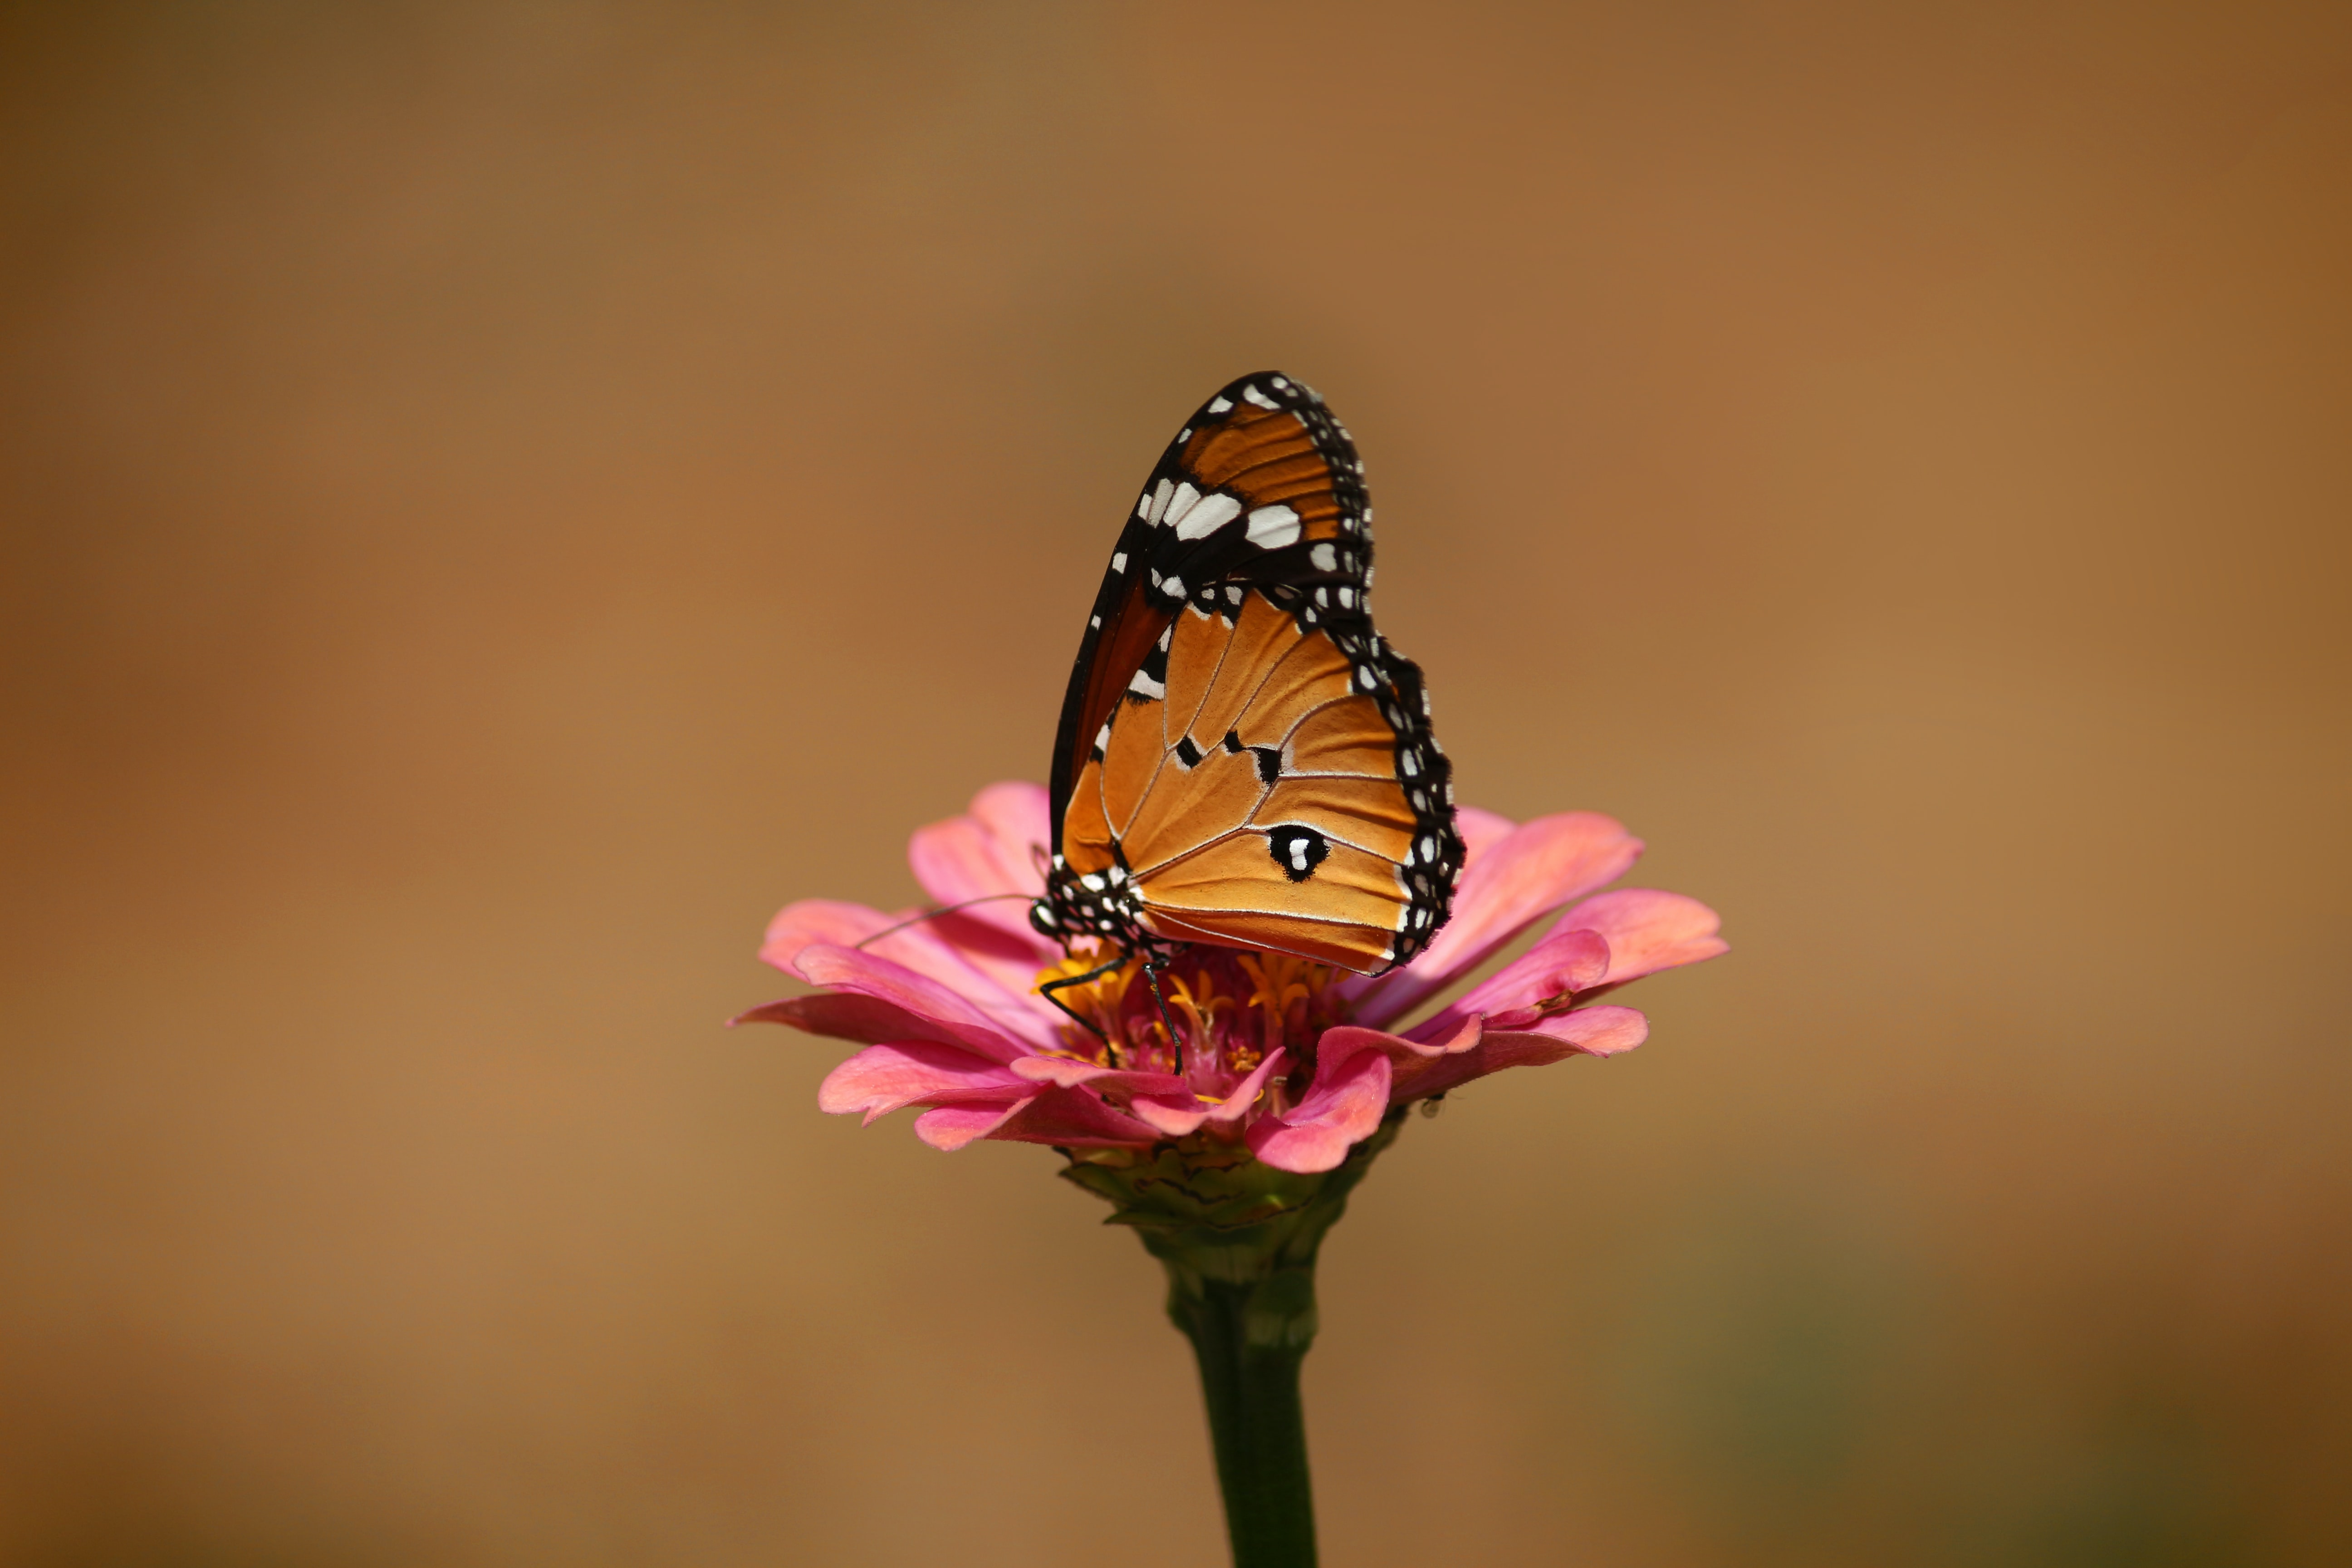 Minimalist portrait of a monarch butterfly perched on a pink flower